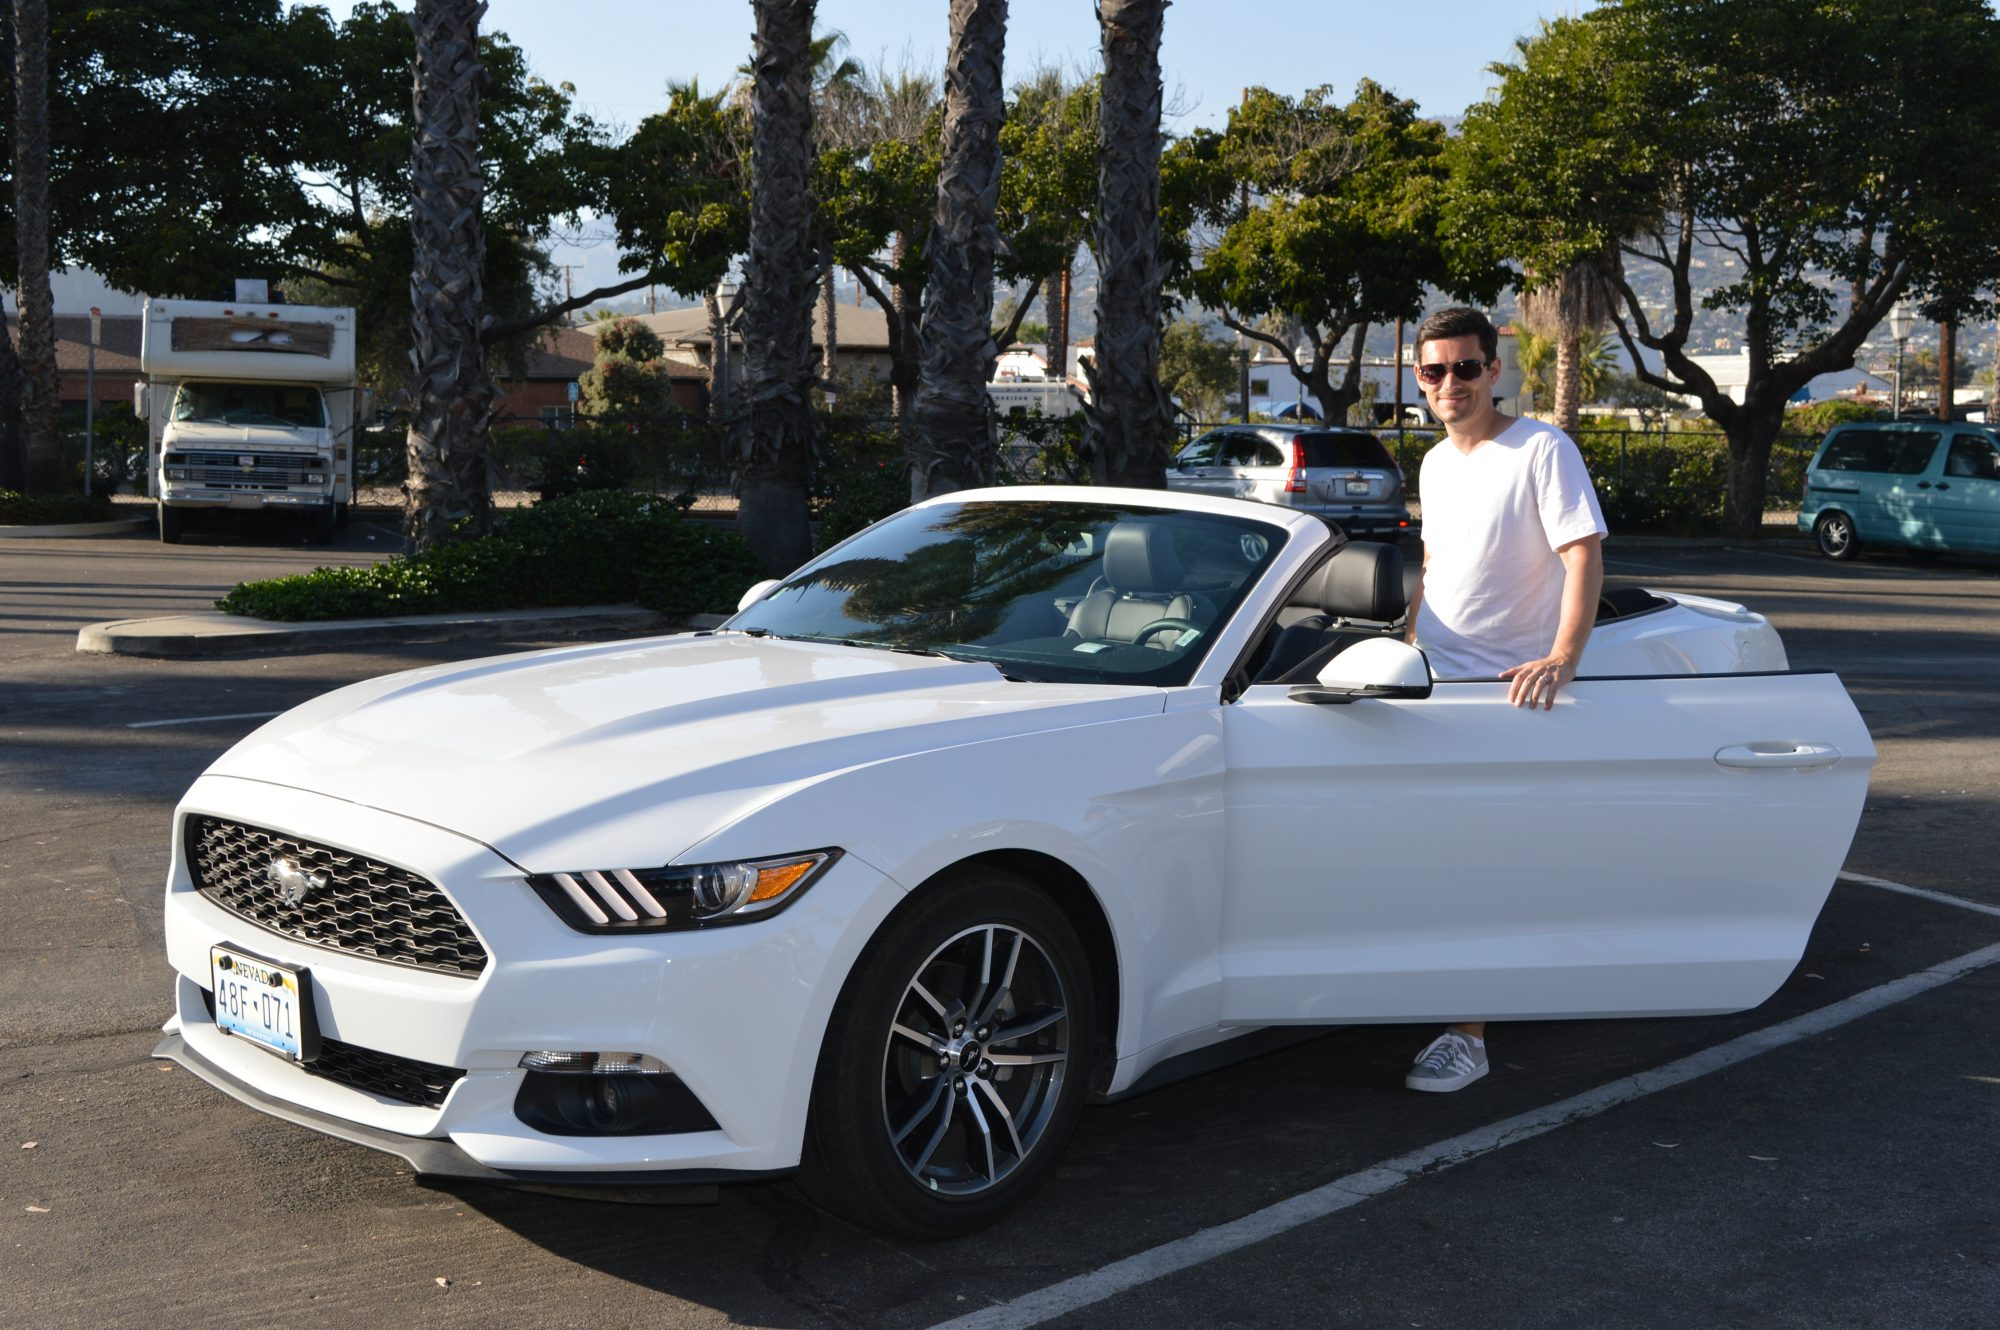 Pacific Coast Highway Ford Mustang